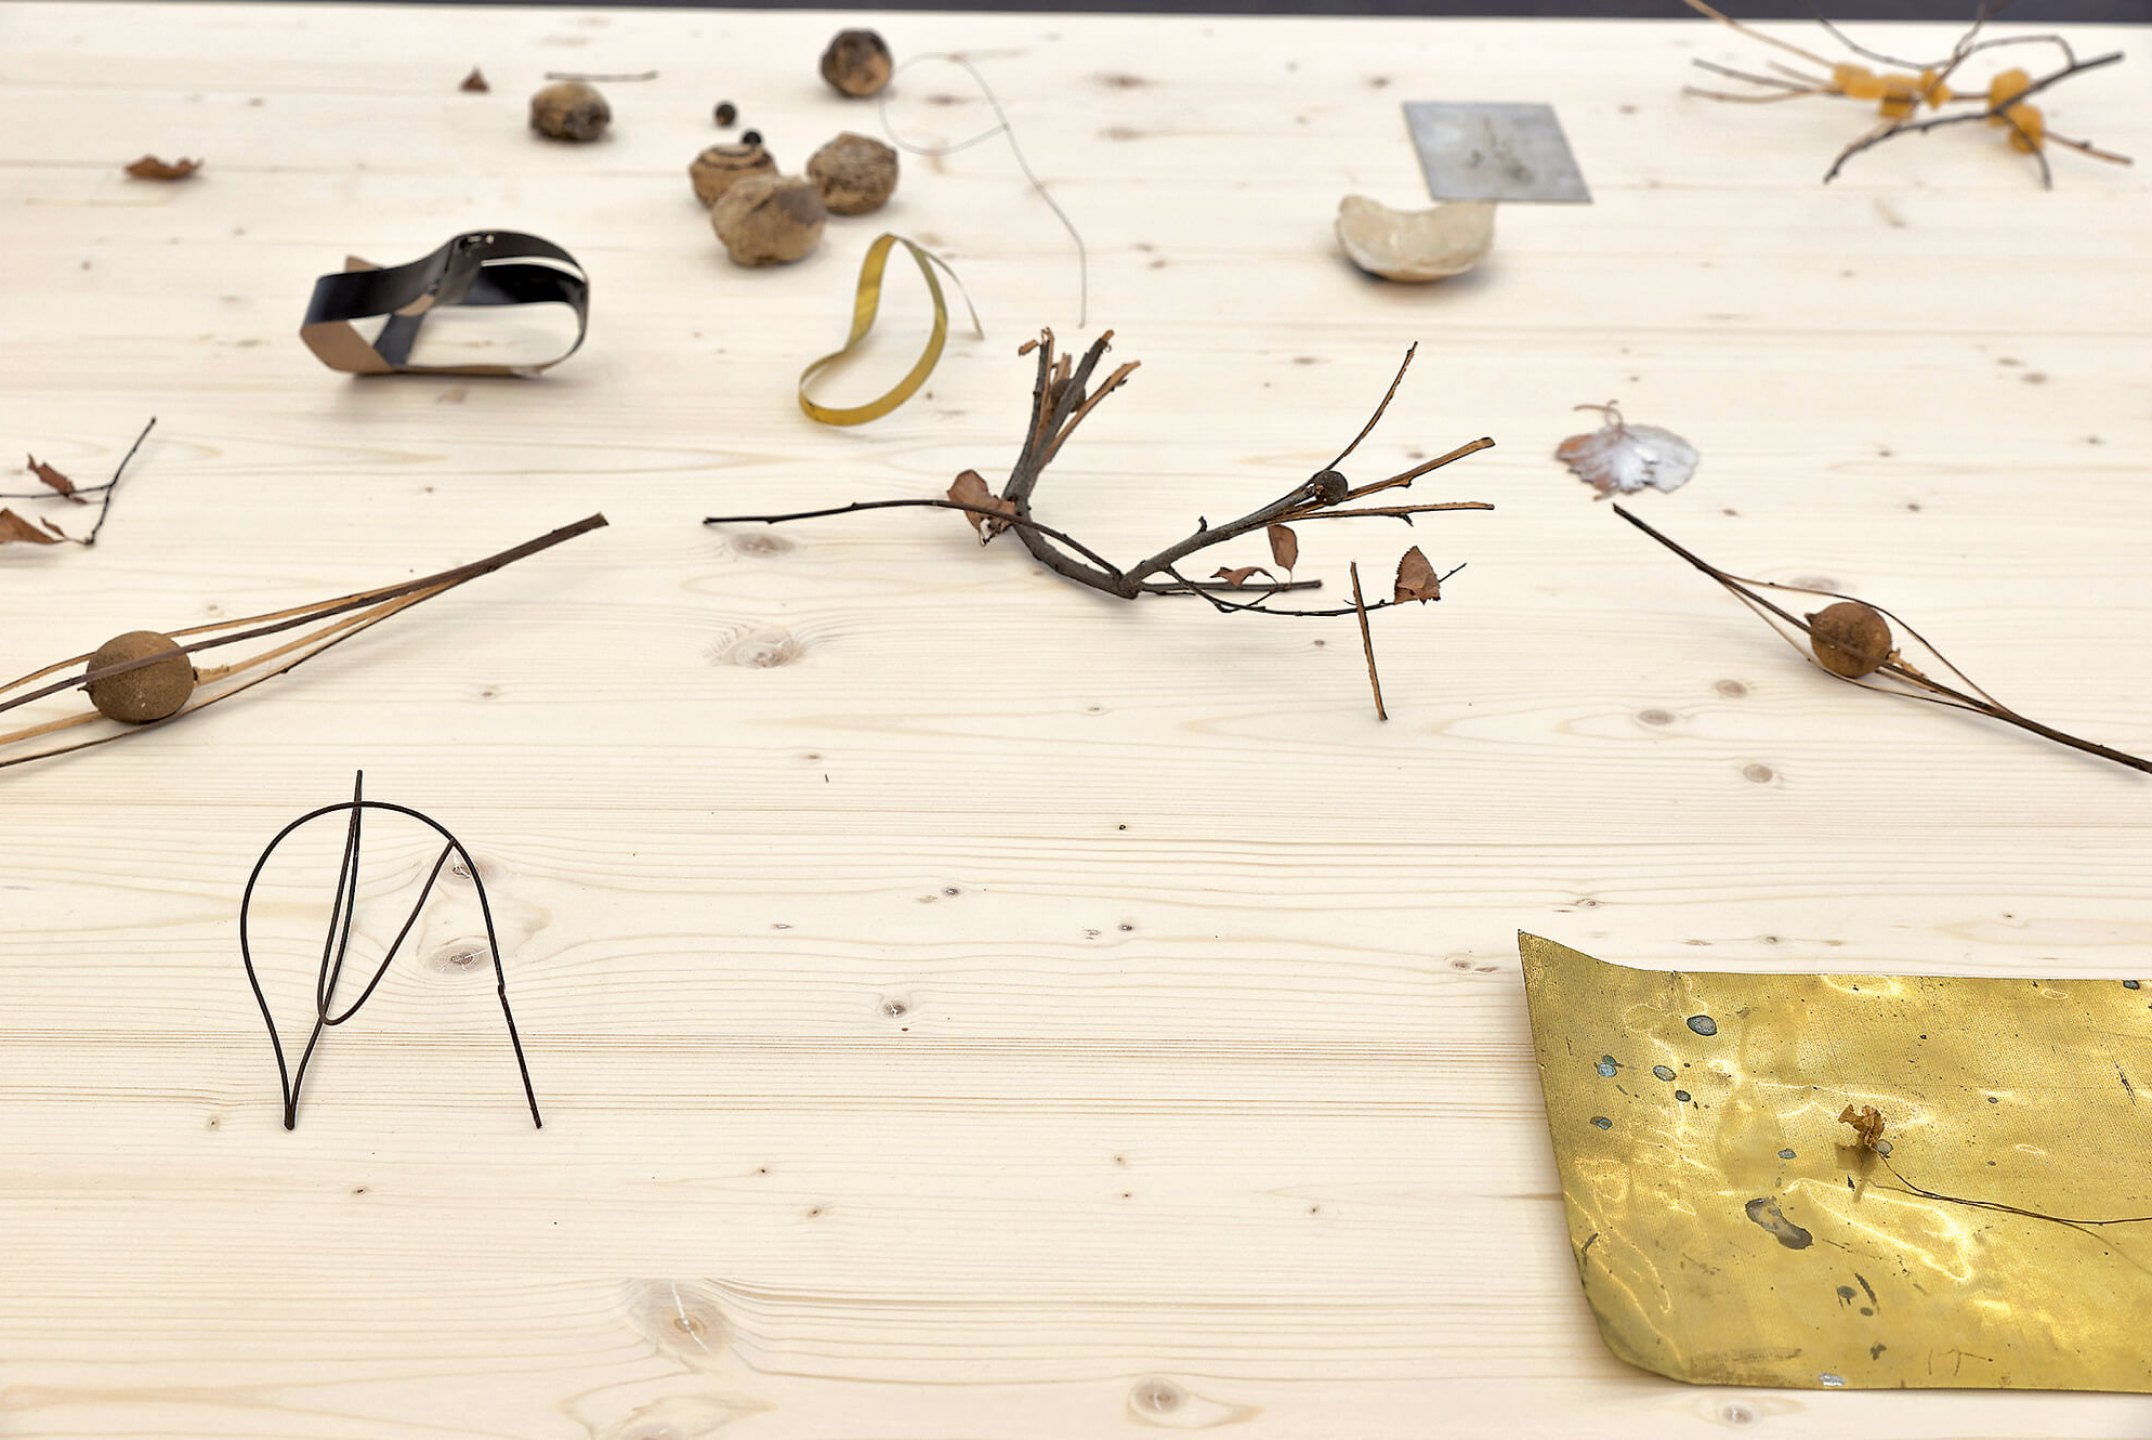 Daniel Steegmann Mangrané,<em>Table with objects</em>,1998, diverse work objects, dimension variable - Mendes Wood DM